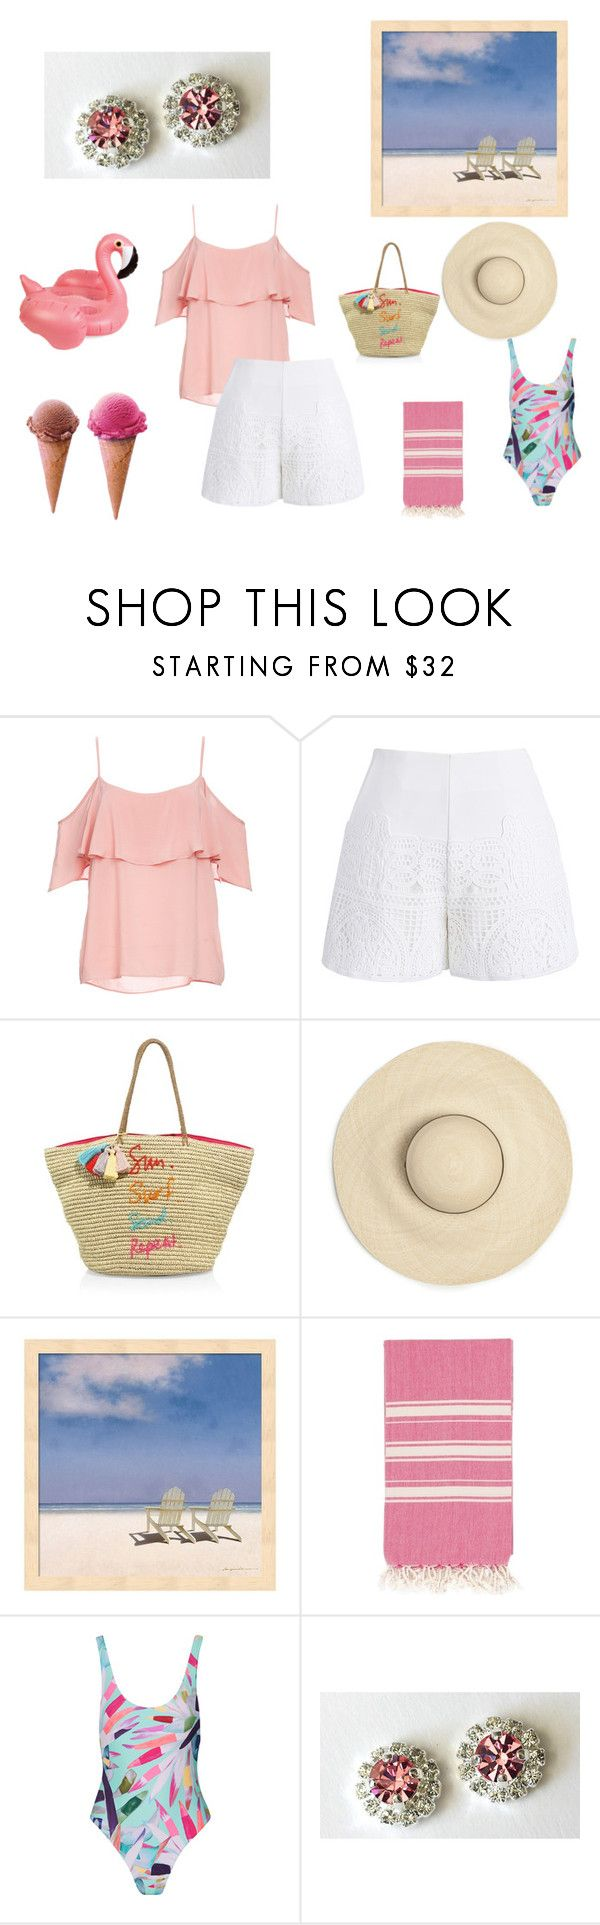 """Summer in Pink"" by artistinjewelry ❤ liked on Polyvore featuring BB Dakota, Chicwish, Rebecca Minkoff, Mara Hoffman, etsy, jewelry and stud"